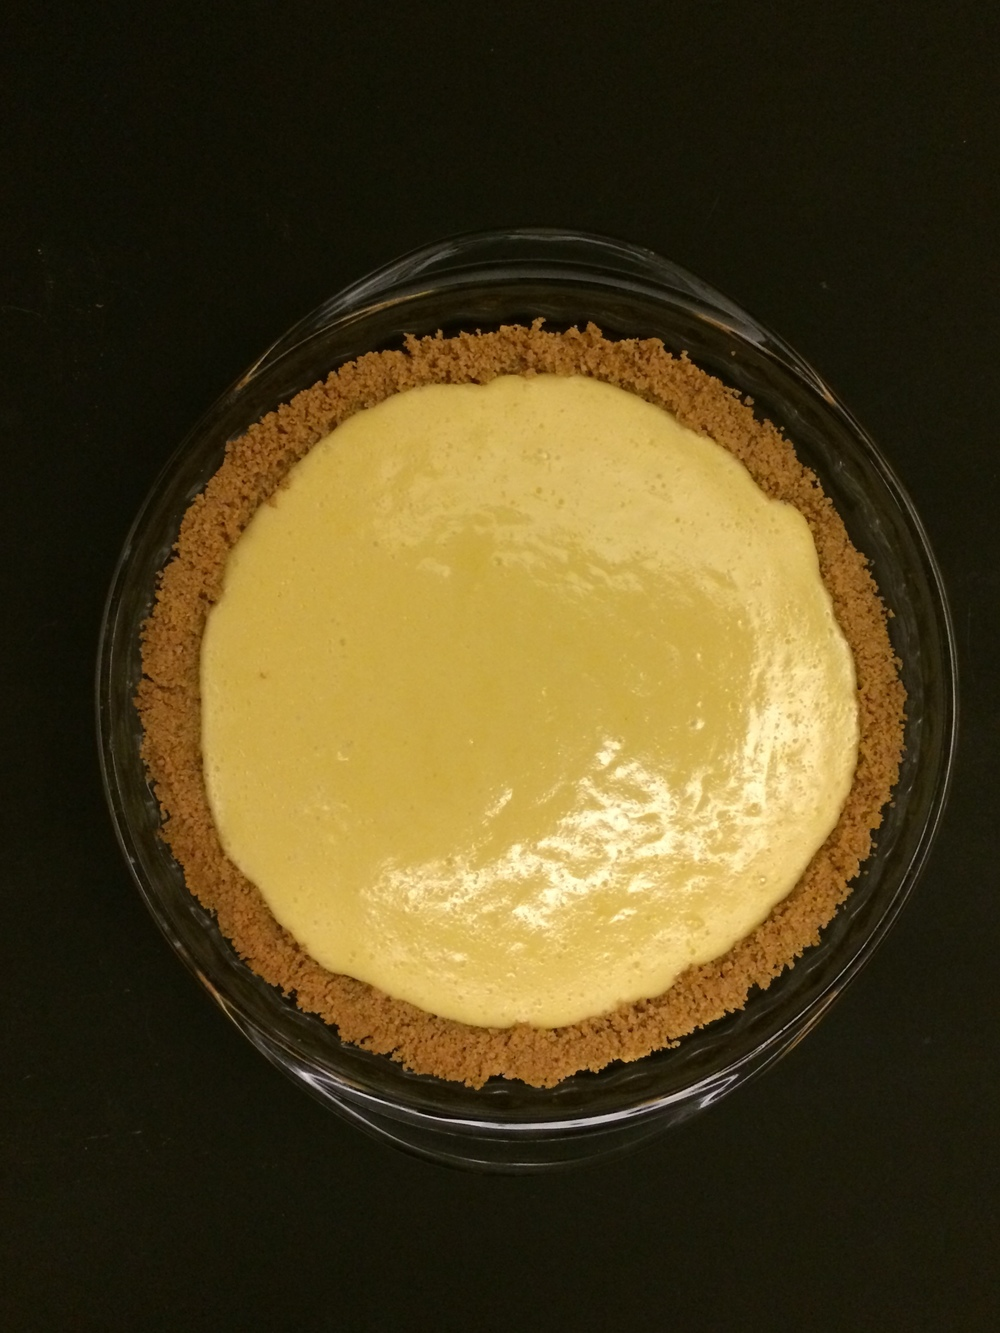 NATIONAL RAD TECH WEEK KEY LIME PIE